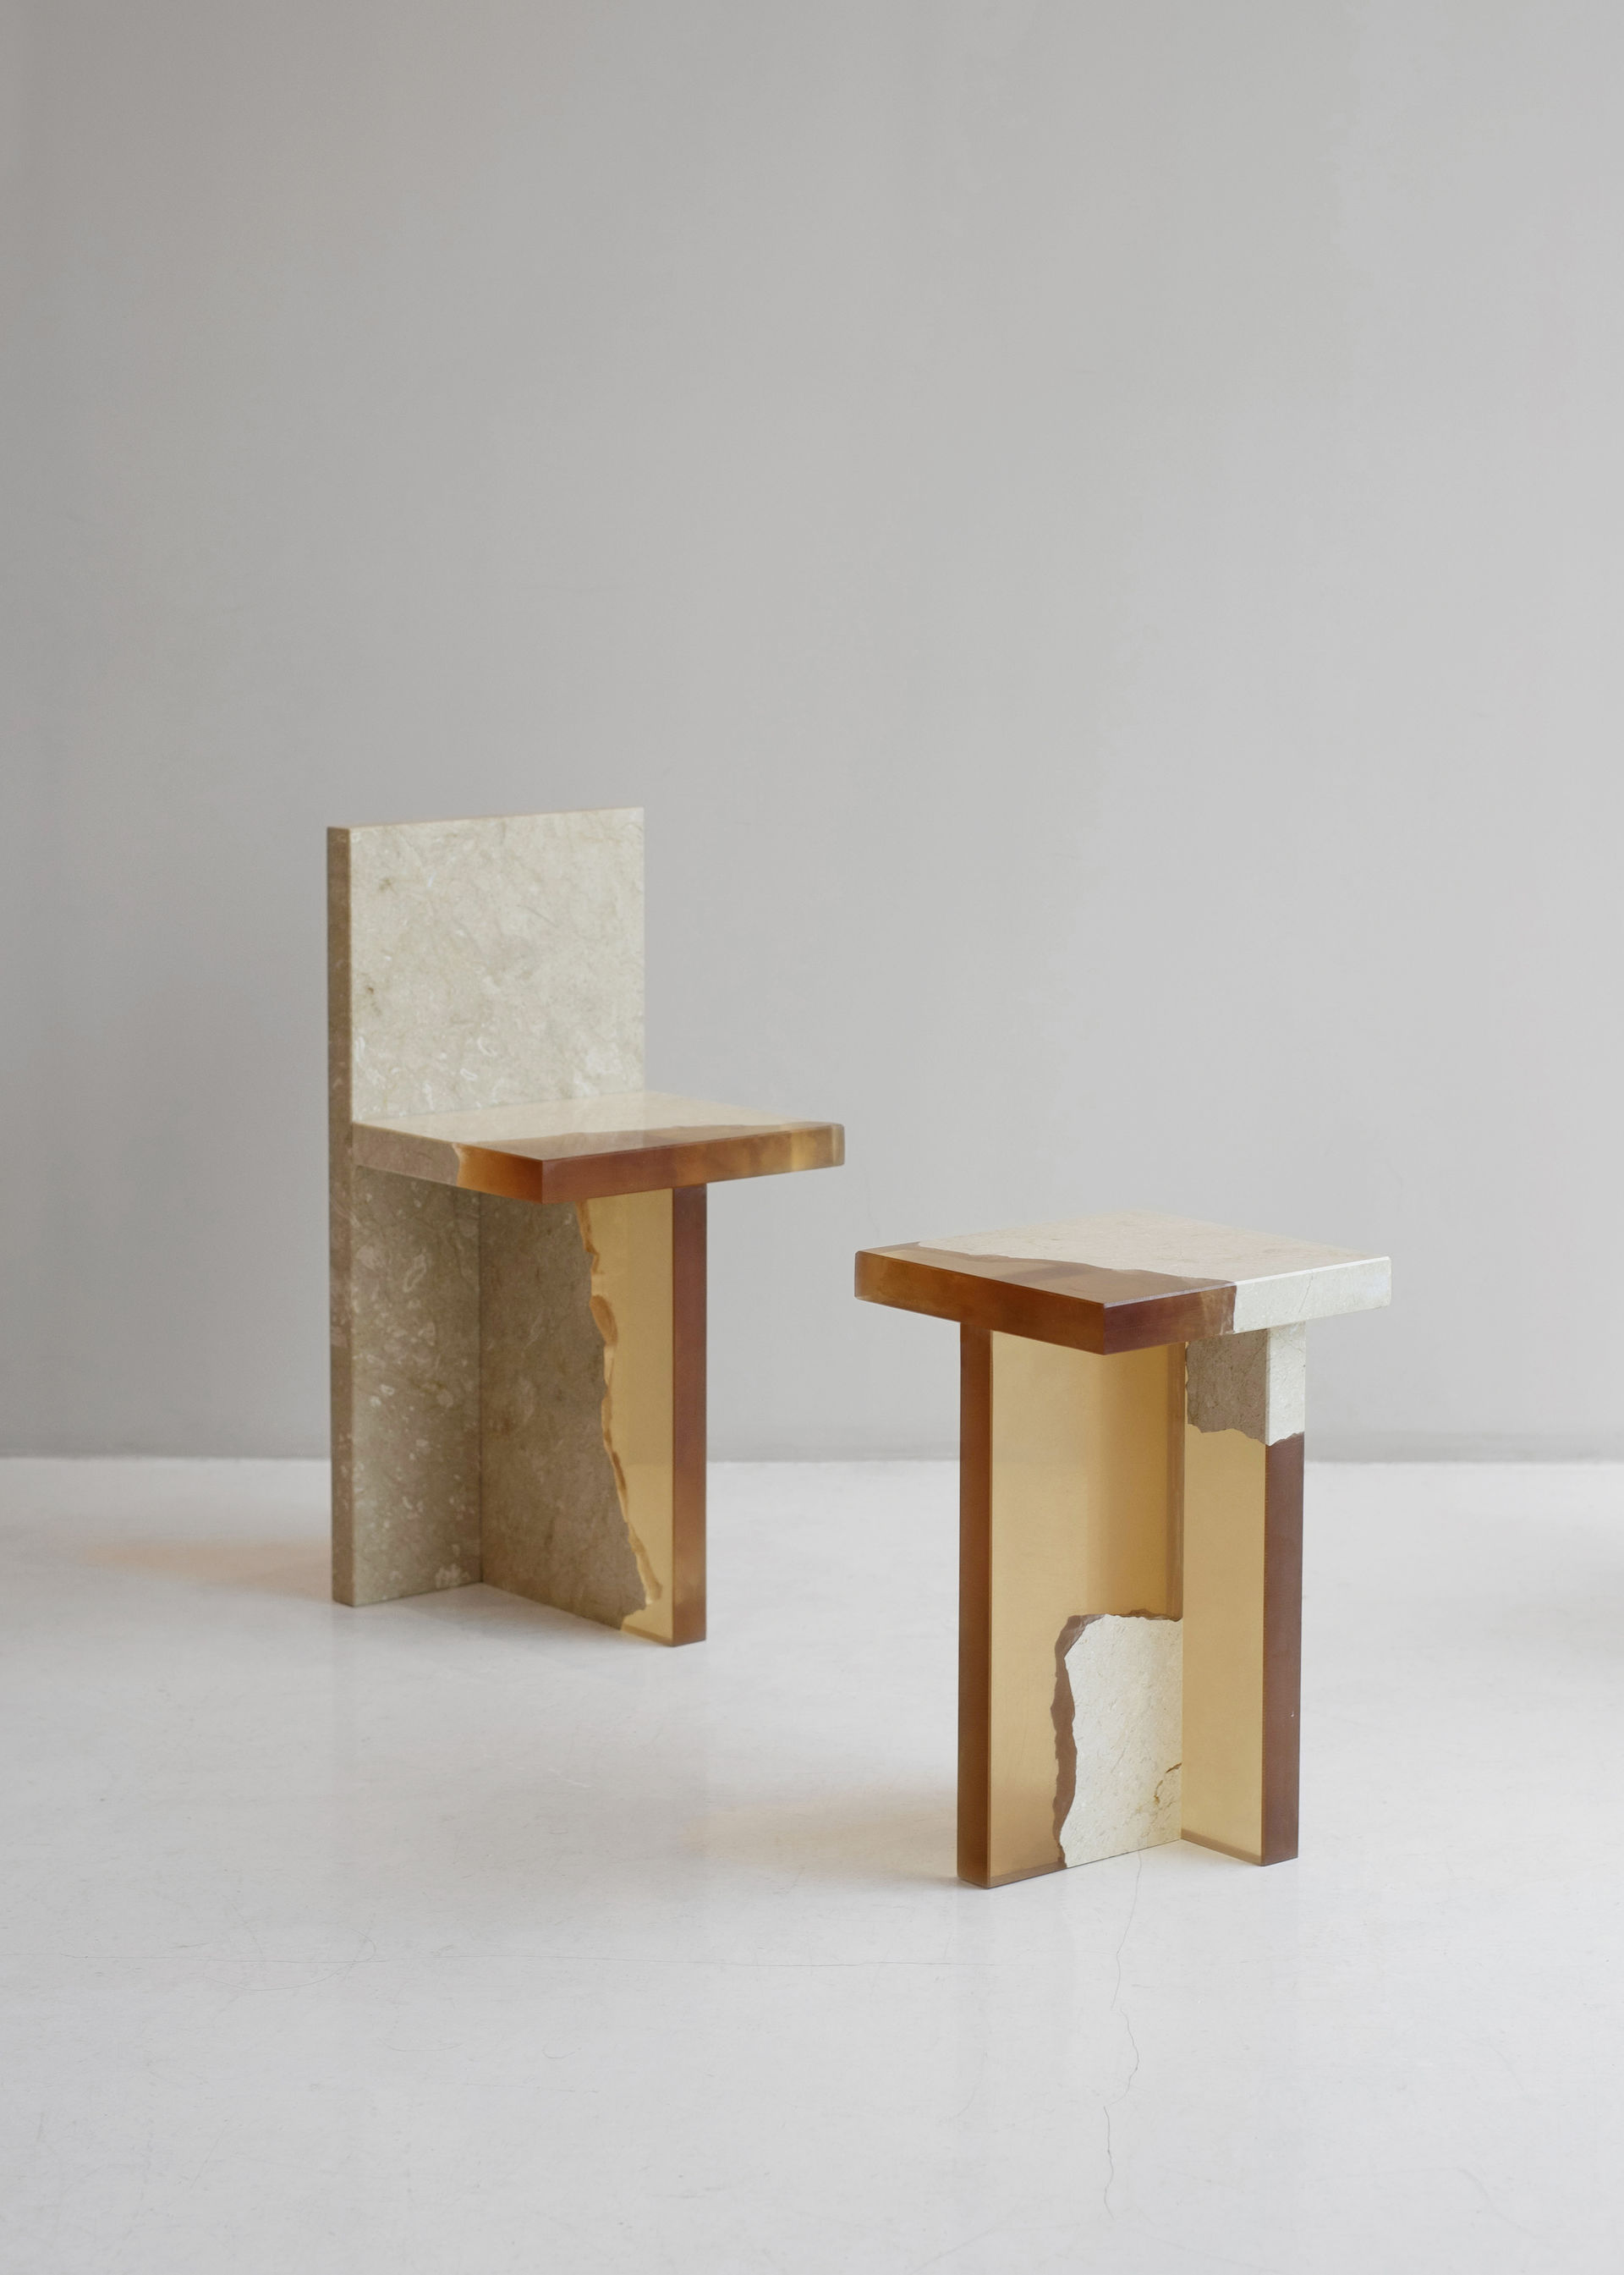 Minimalist Furniture Fragment Series Is A Minimalist Collection Of Furniture Designed